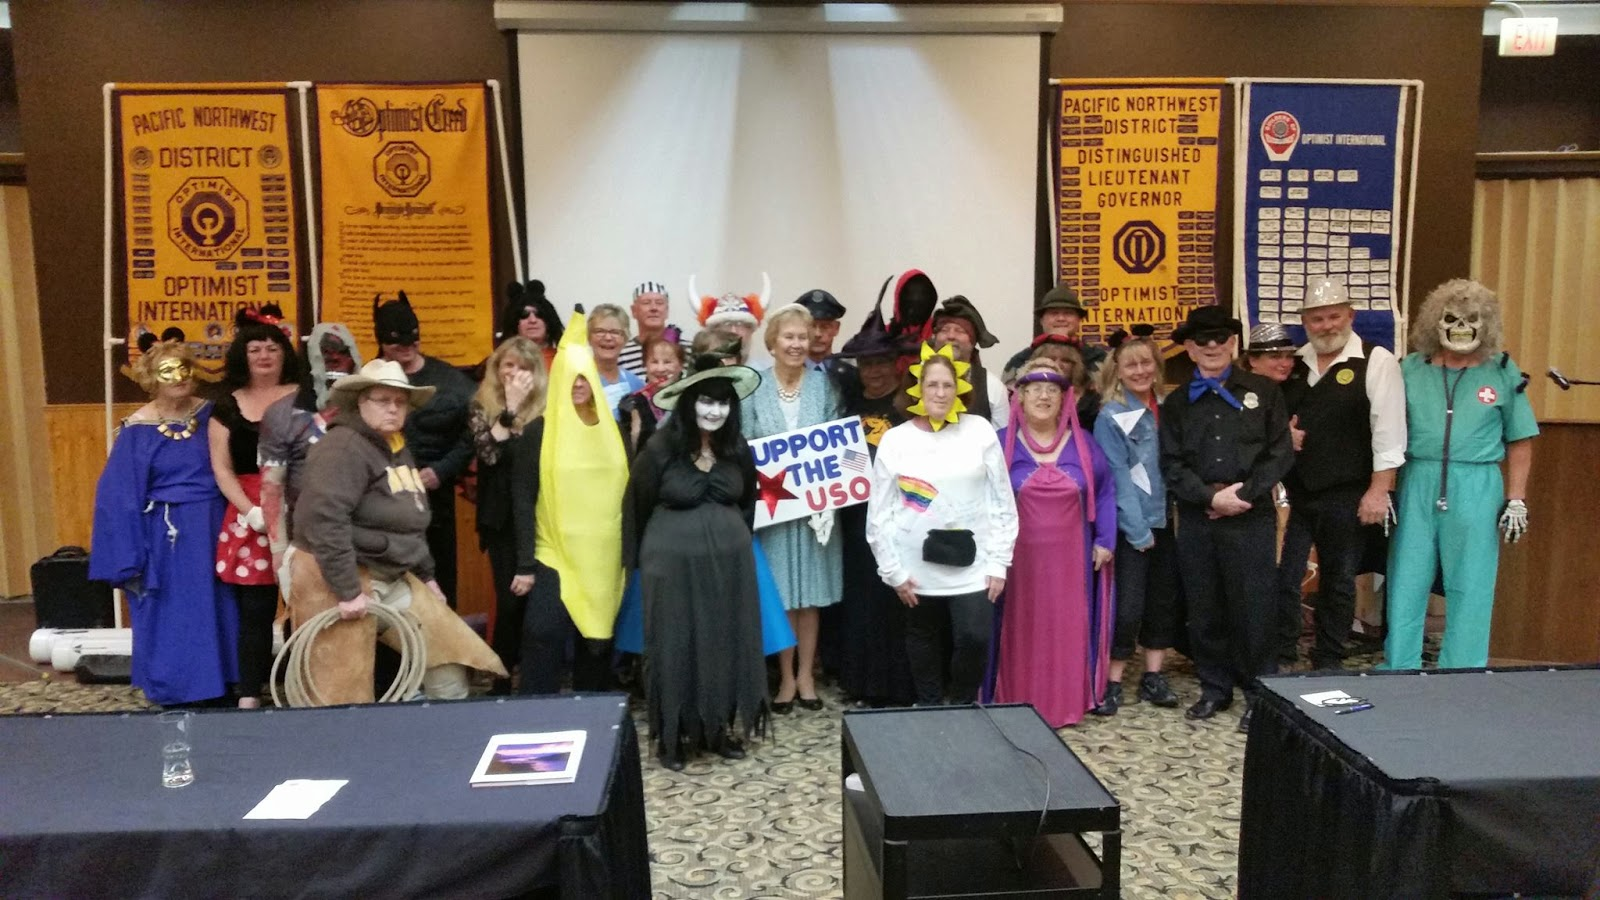 pnw district optimist clubs costume party